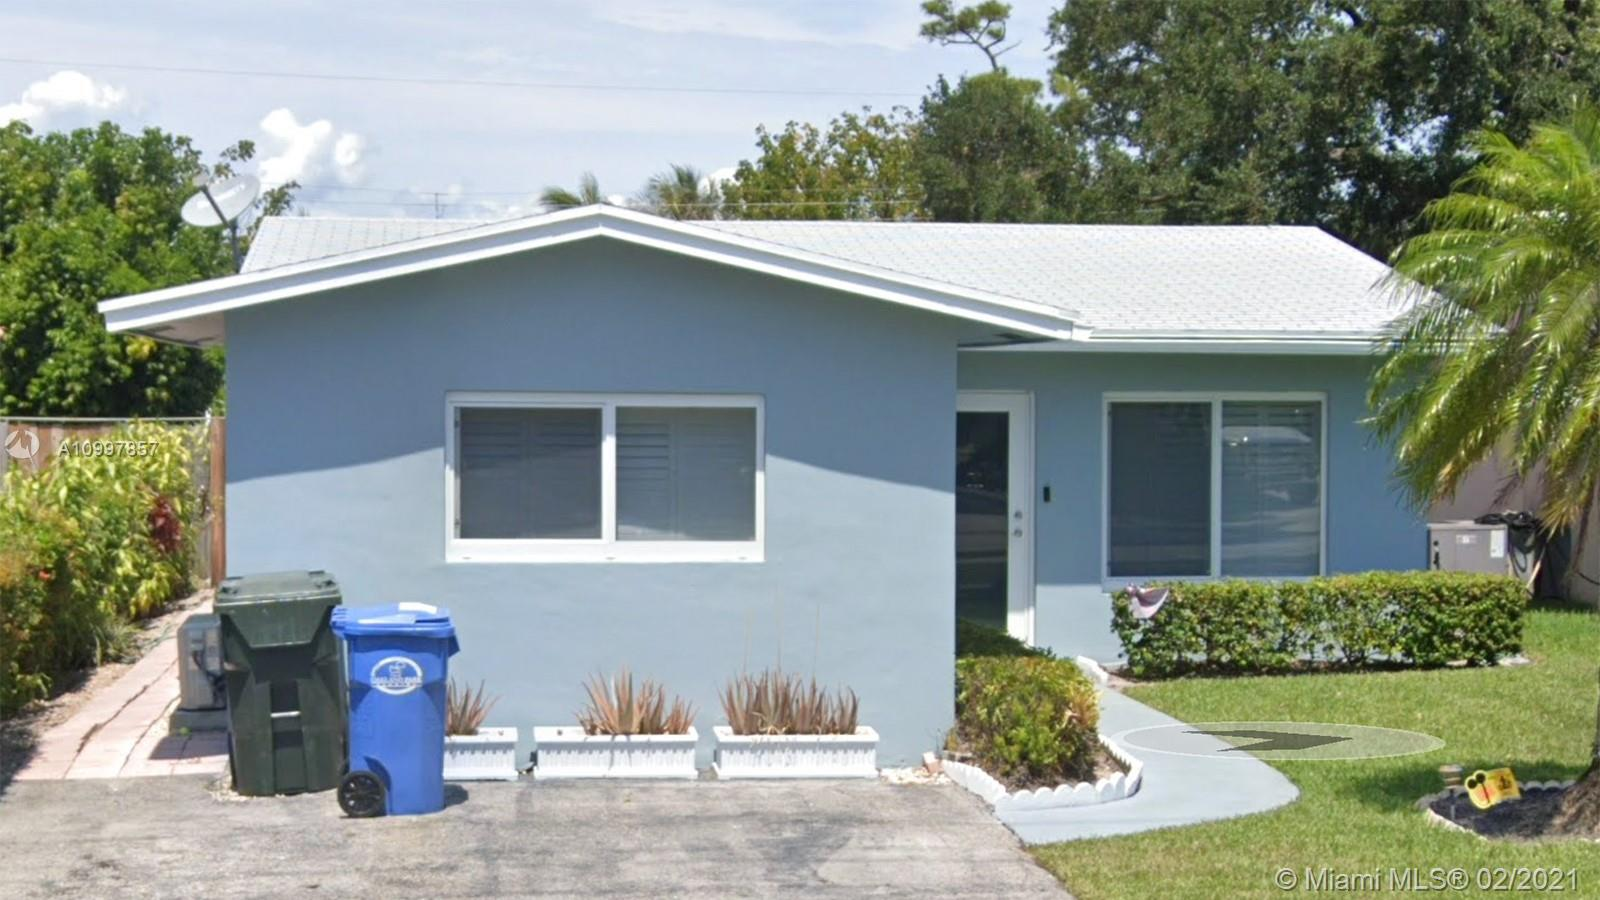 This lovely home with a large pool is located in the heart of Oakland Park & is exemplary of the pride of ownership. Kitchen is updated, bathroom remodeled, has impact windows & doors,r oof 3/yrs old, updated electrical panel, AC/5 yrs, water heater/3 yrs, has $36K updated plumbing/PVC, pool pump/2 yrs. As per BCPA legally a 3/1/1/ but more like a 2/1 with bonus room/den & a poolside cabana bath. 3rd bedroom is like a den, must pass-through it to access master bedroom. 1/2 bath (sink & toilet only) is outside, accessible through pool area only. Integrated thermostat & security cameras included. Blocks away from Downtown Oakland Park & the Culinary District. The beach, shopping, highways, access to Wilton Manors & Ft Lauderdale only 10-15 minutes.Makes a great AirBNB. Furniture negotiable.